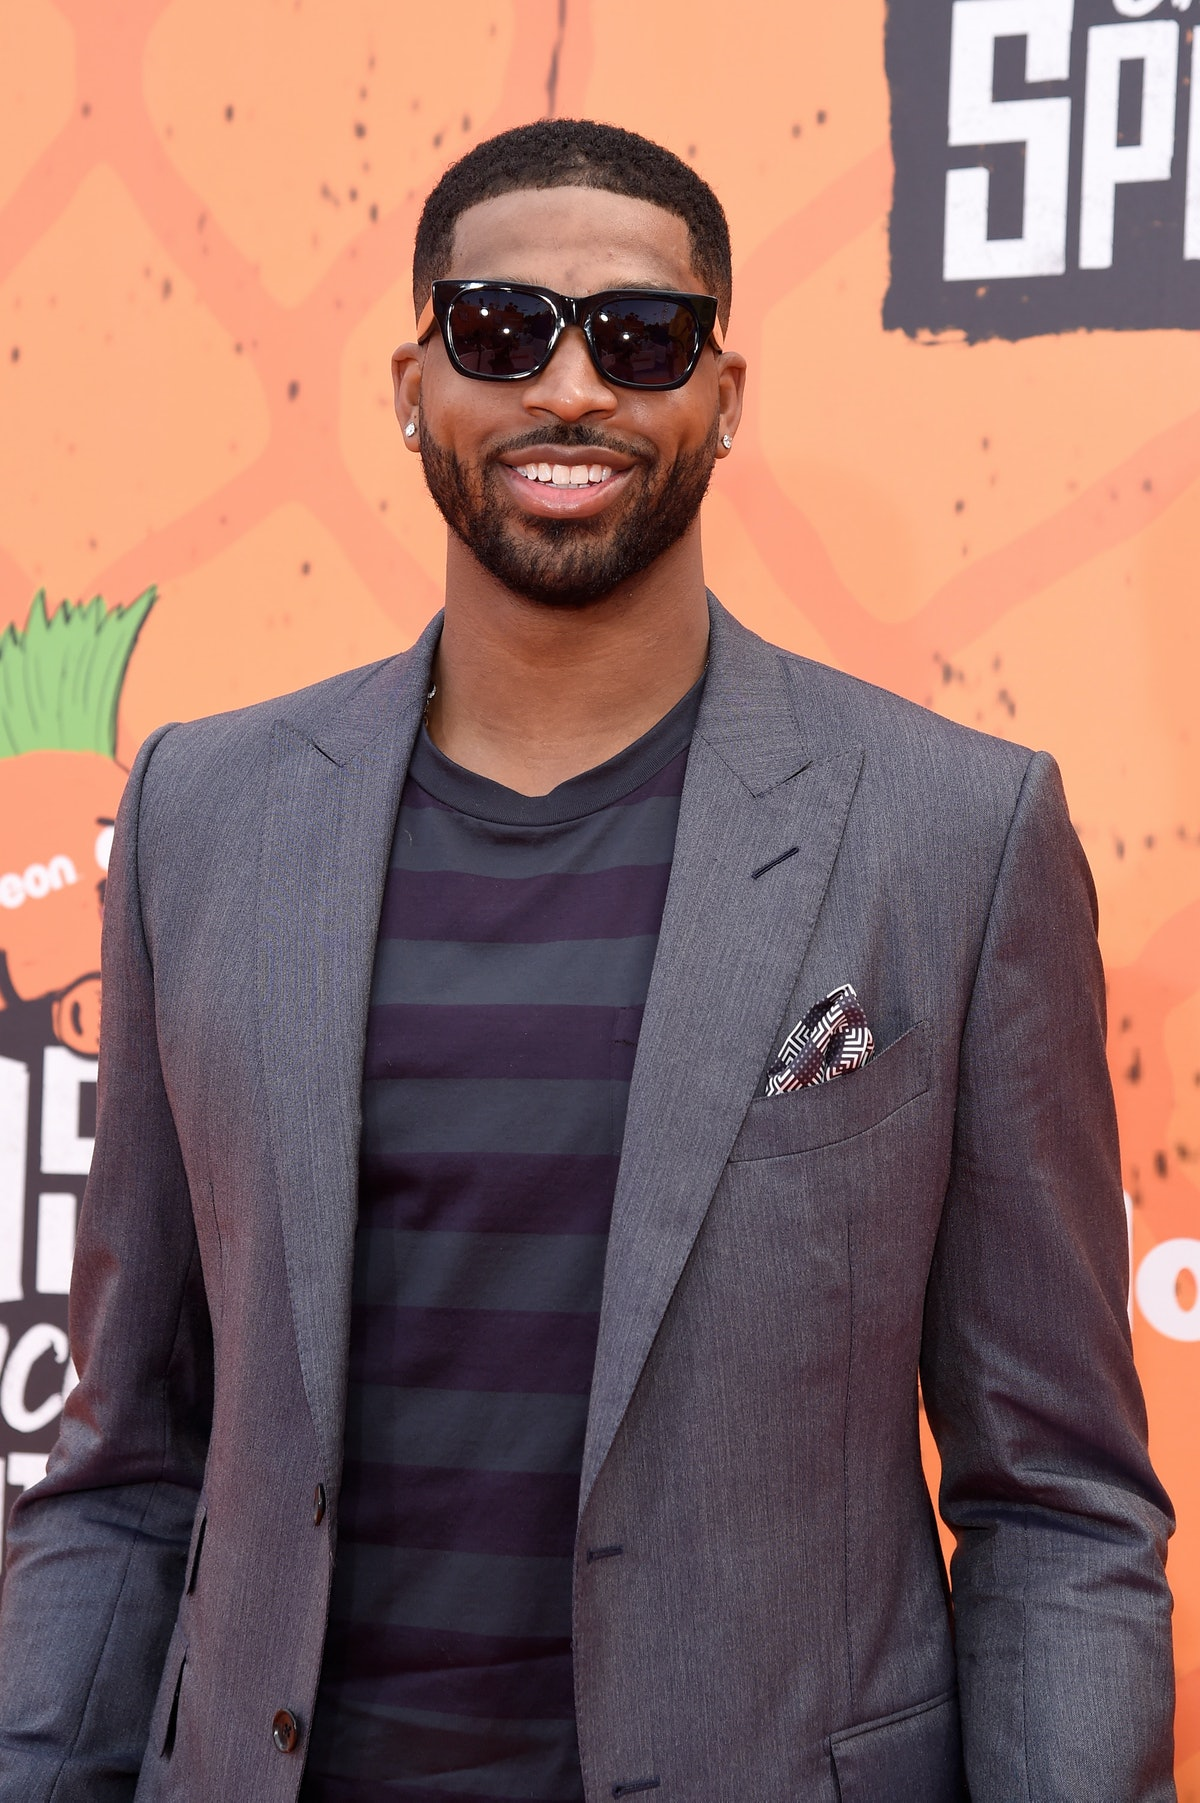 WESTWOOD, CA - JULY 14:  NBA player Tristan Thompson attends the Nickelodeon Kids' Choice Sports Awards 2016 at UCLA's Pauley Pavilion on July 14, 2016 in Westwood, California.  (Photo by Kevin Mazur/WireImage)